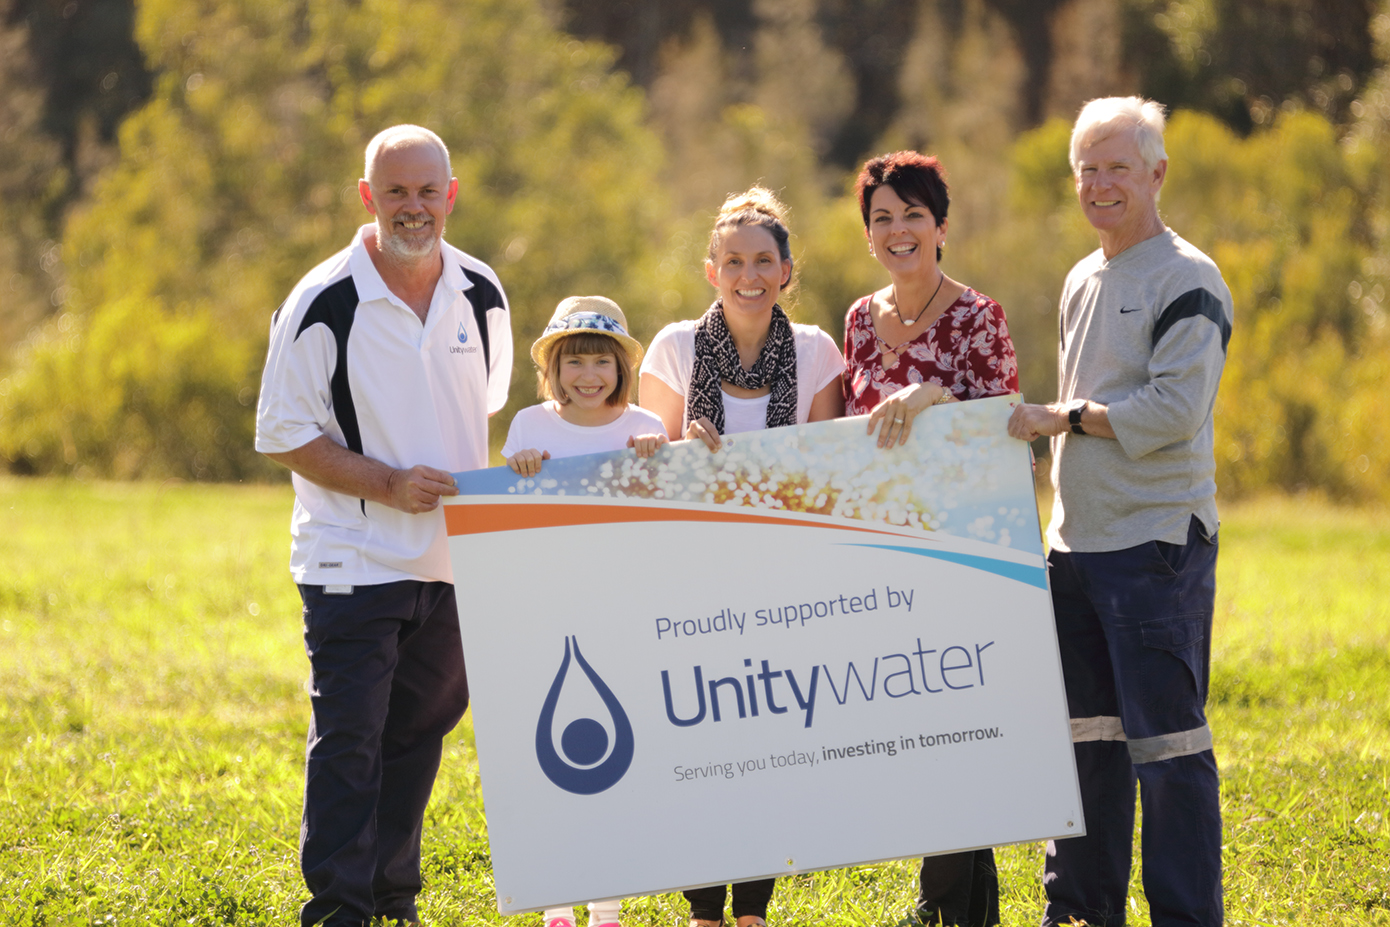 Unitywater community sponsorship